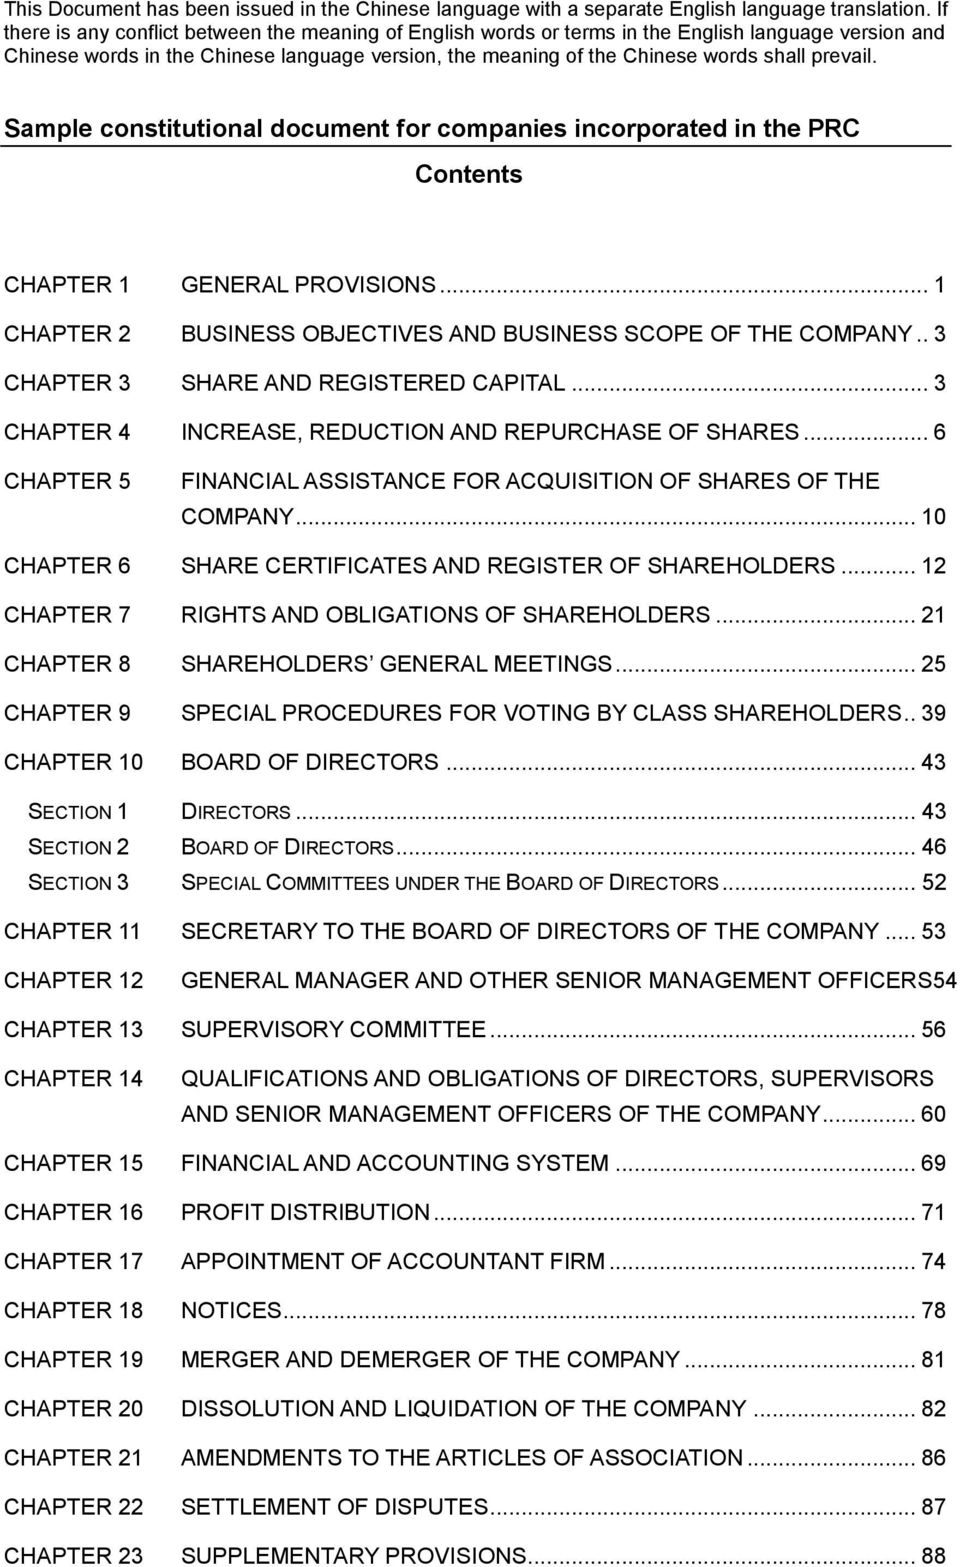 prevail. Sample constitutional document for companies incorporated in the PRC Contents CHAPTER 1 GENERAL PROVISIONS... 1 CHAPTER 2 BUSINESS OBJECTIVES AND BUSINESS SCOPE OF THE COMPANY.